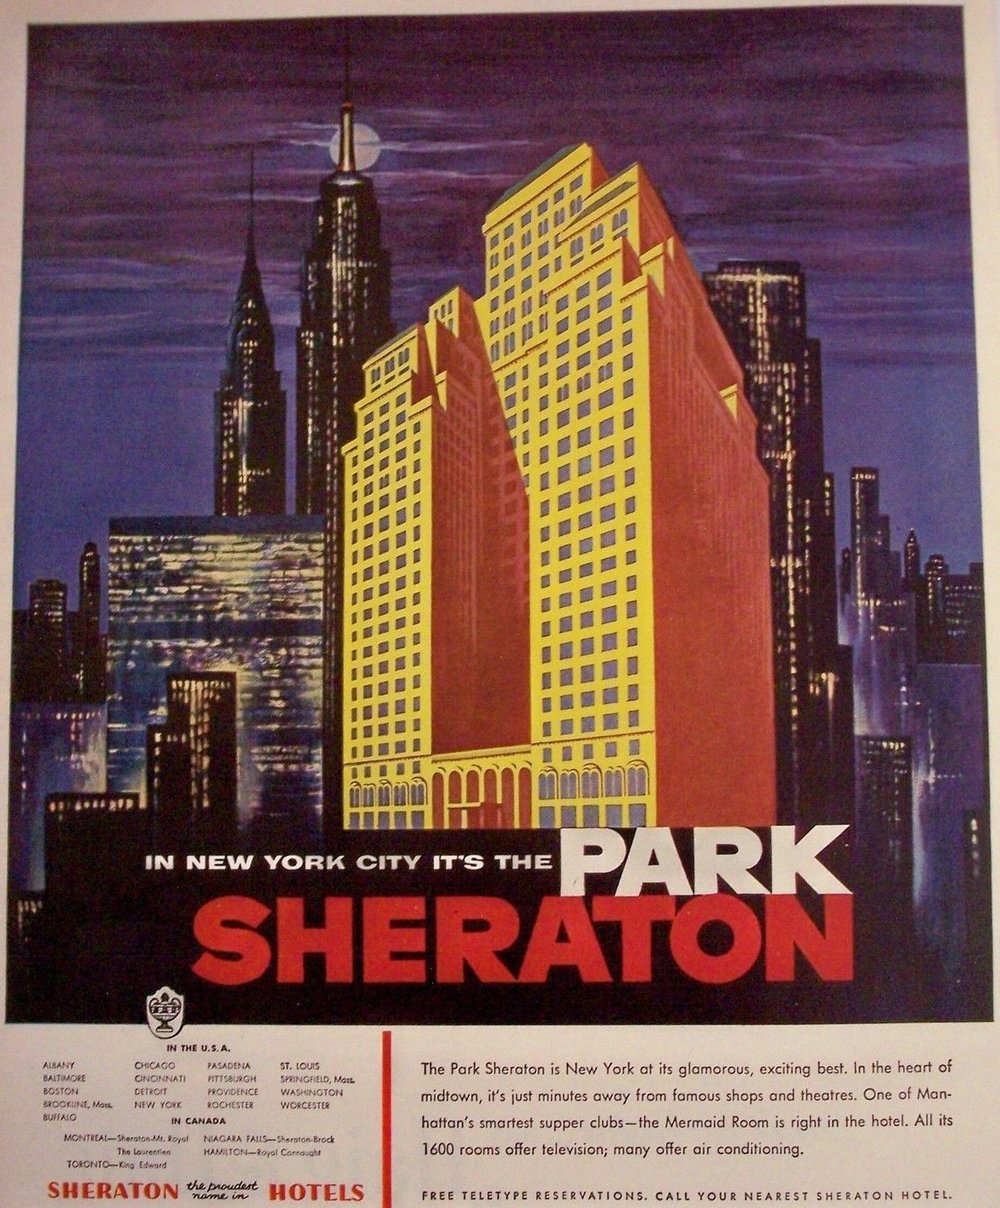 1954 - The Park Sheraton in New York